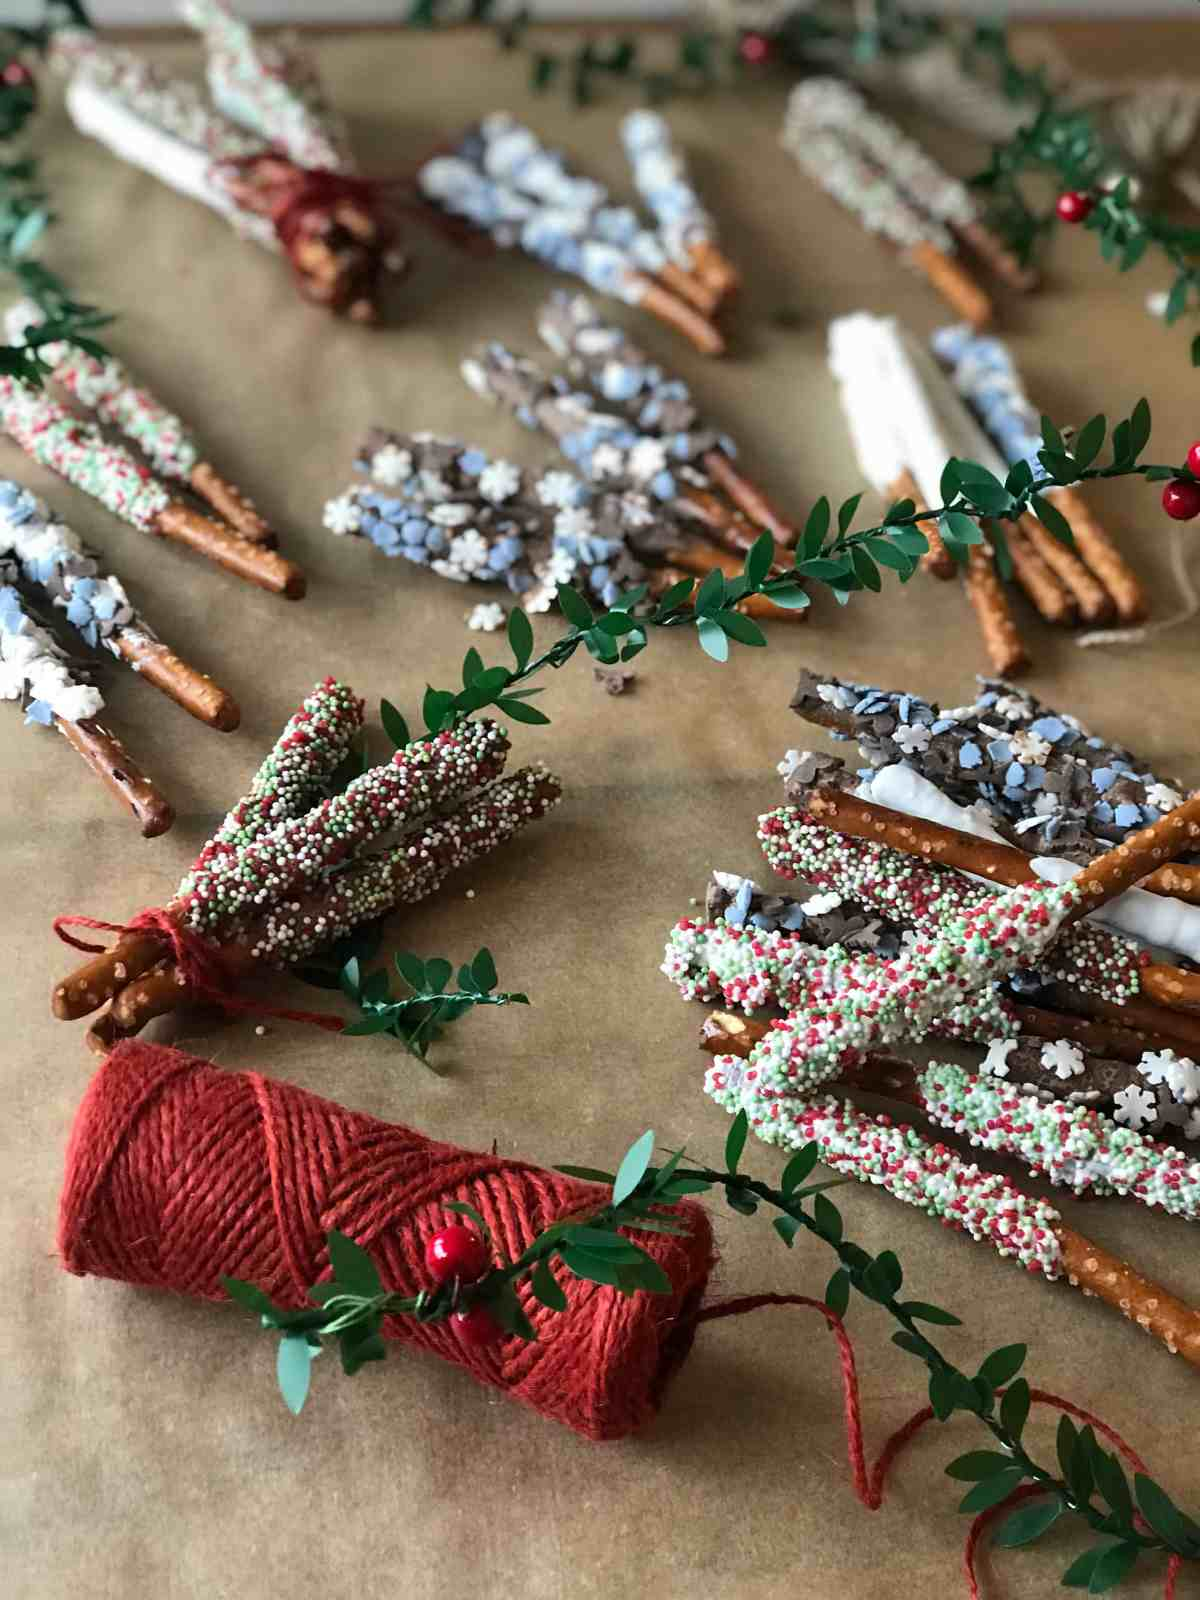 candy pretzel rods